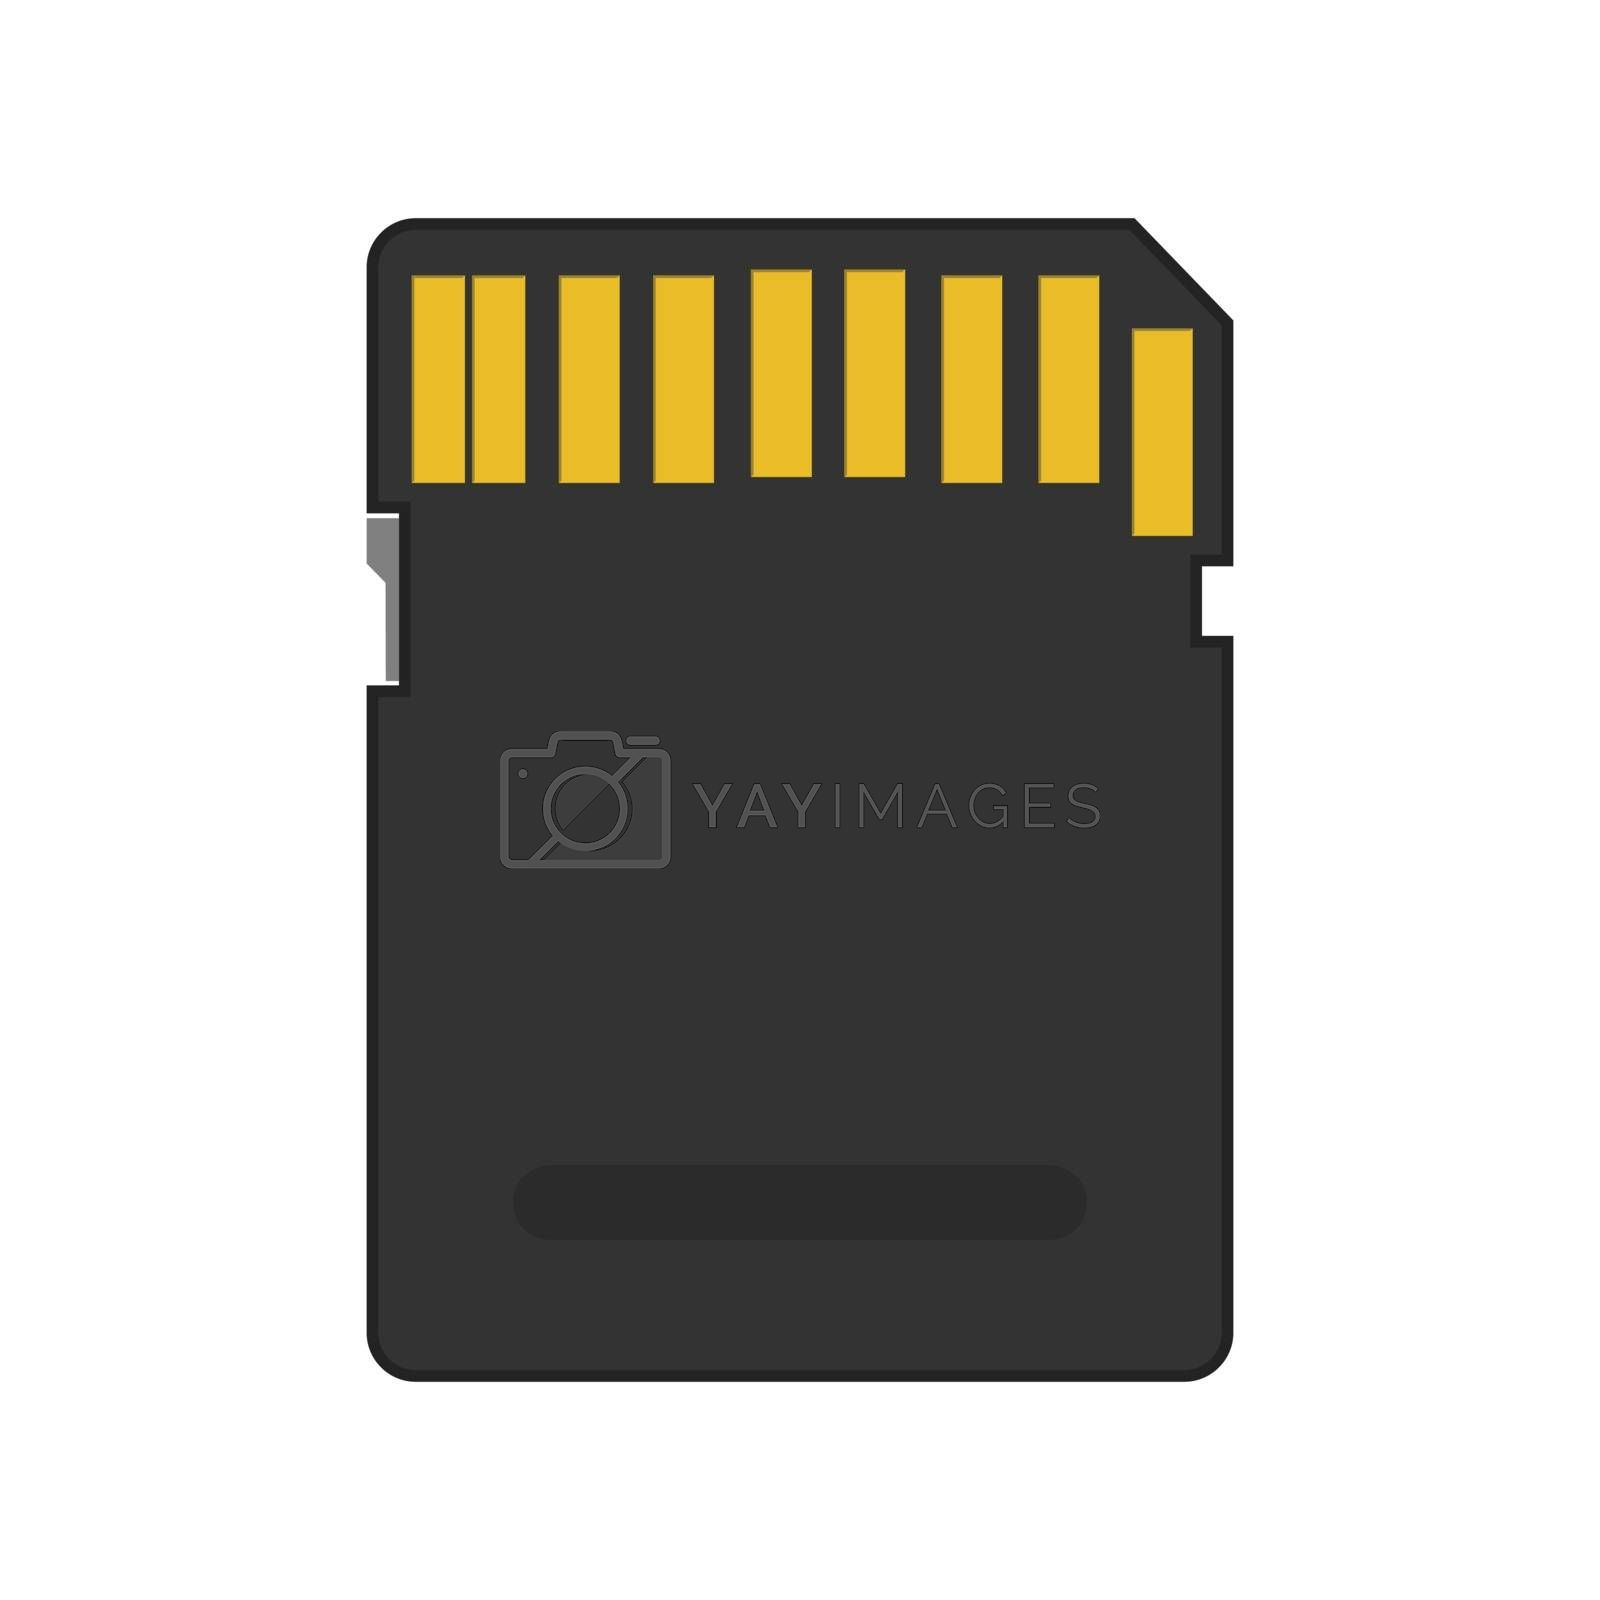 Royalty free image of Memory card for electronic devices, flat style by Grommik